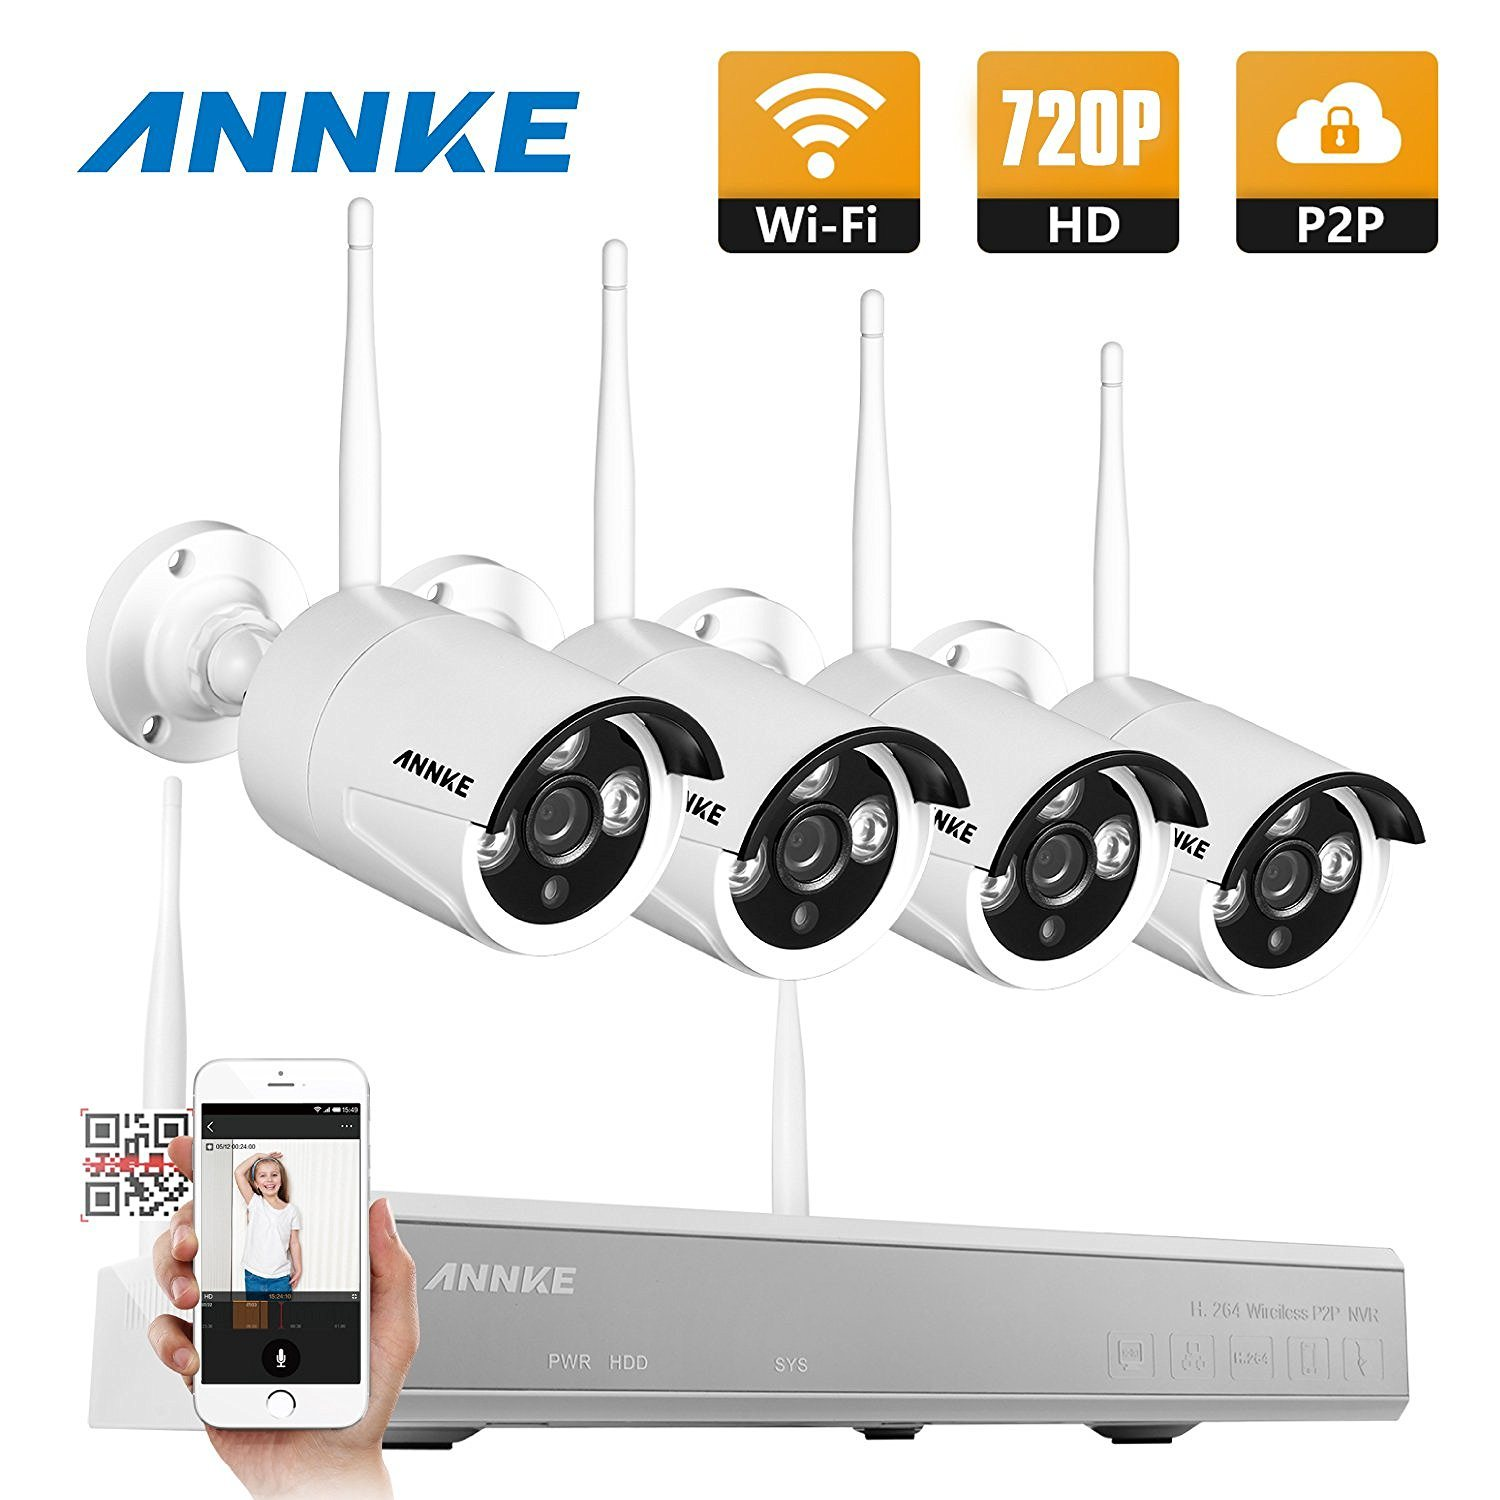 Diy Home Security Camera System Reviews Best Wireless Security Camera Systems With Night Vision